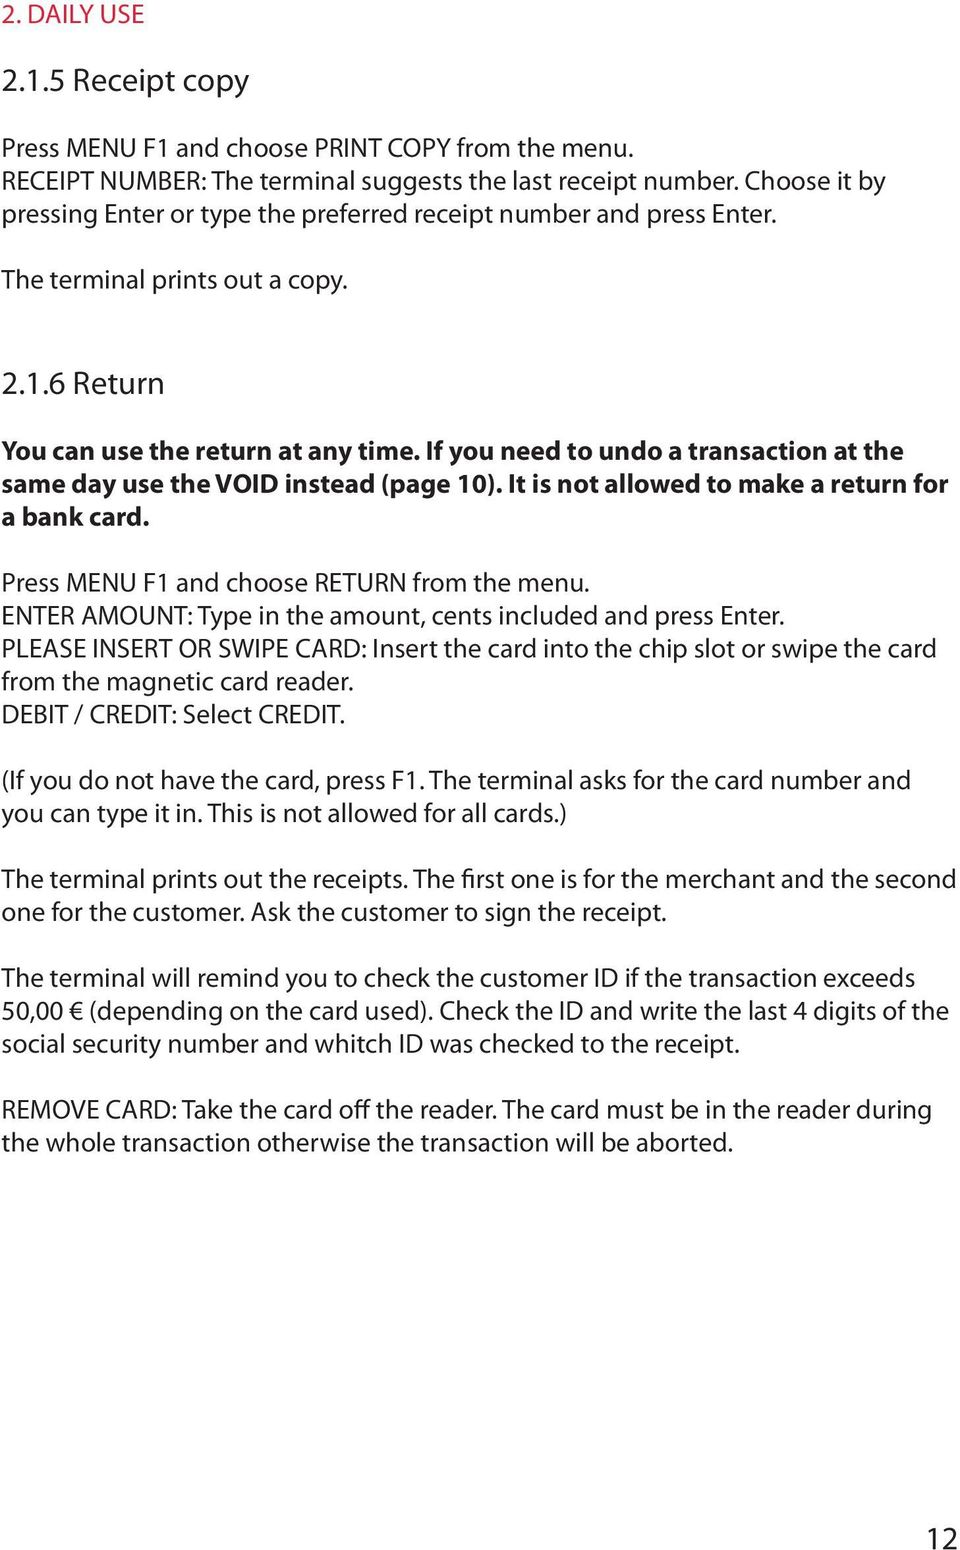 If you need to undo a transaction at the same day use the VOID instead (page 10). It is not allowed to make a return for a bank card. Press MENU F1 and choose RETURN from the menu.